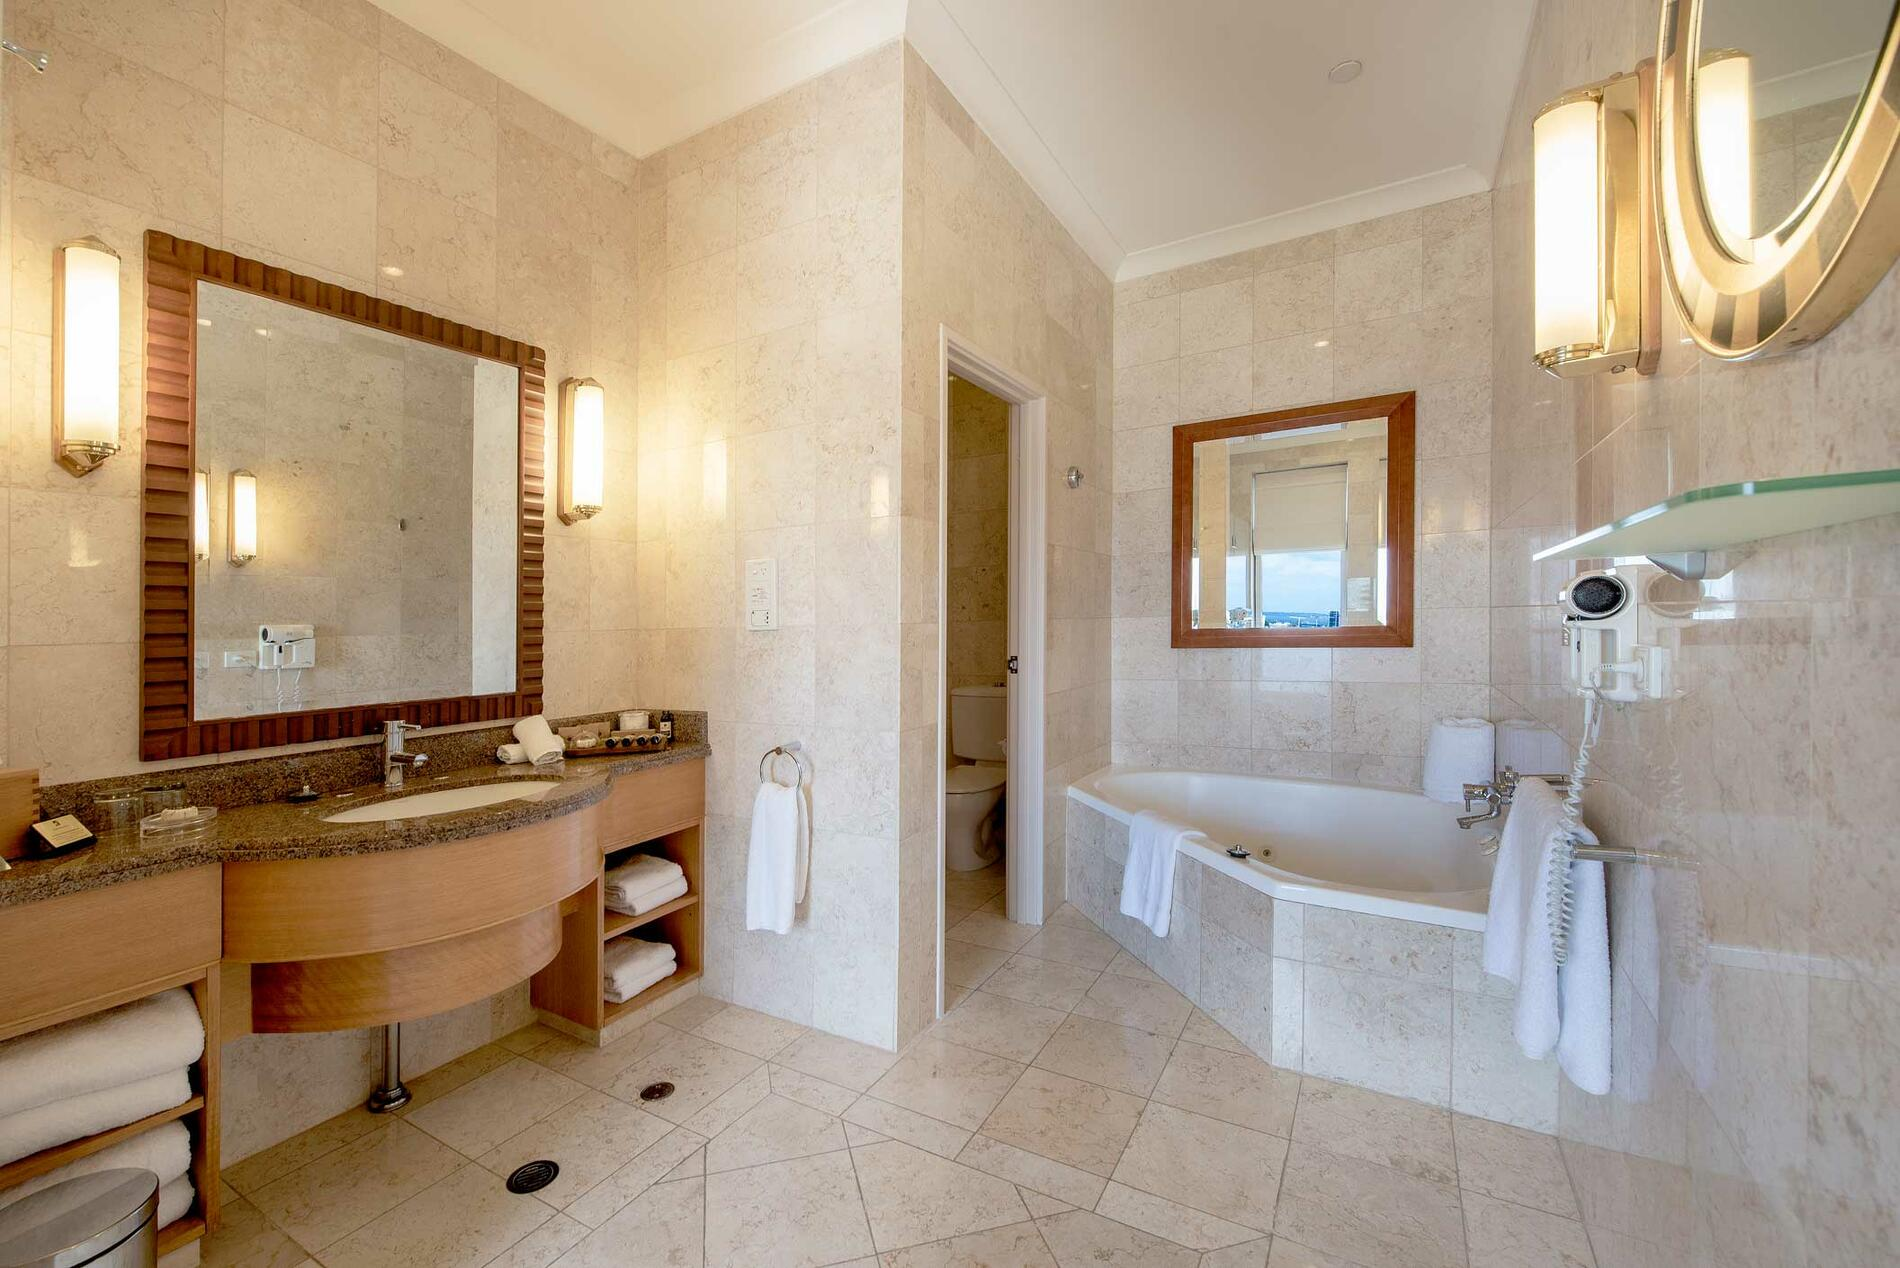 Luxury accommodation in Perth